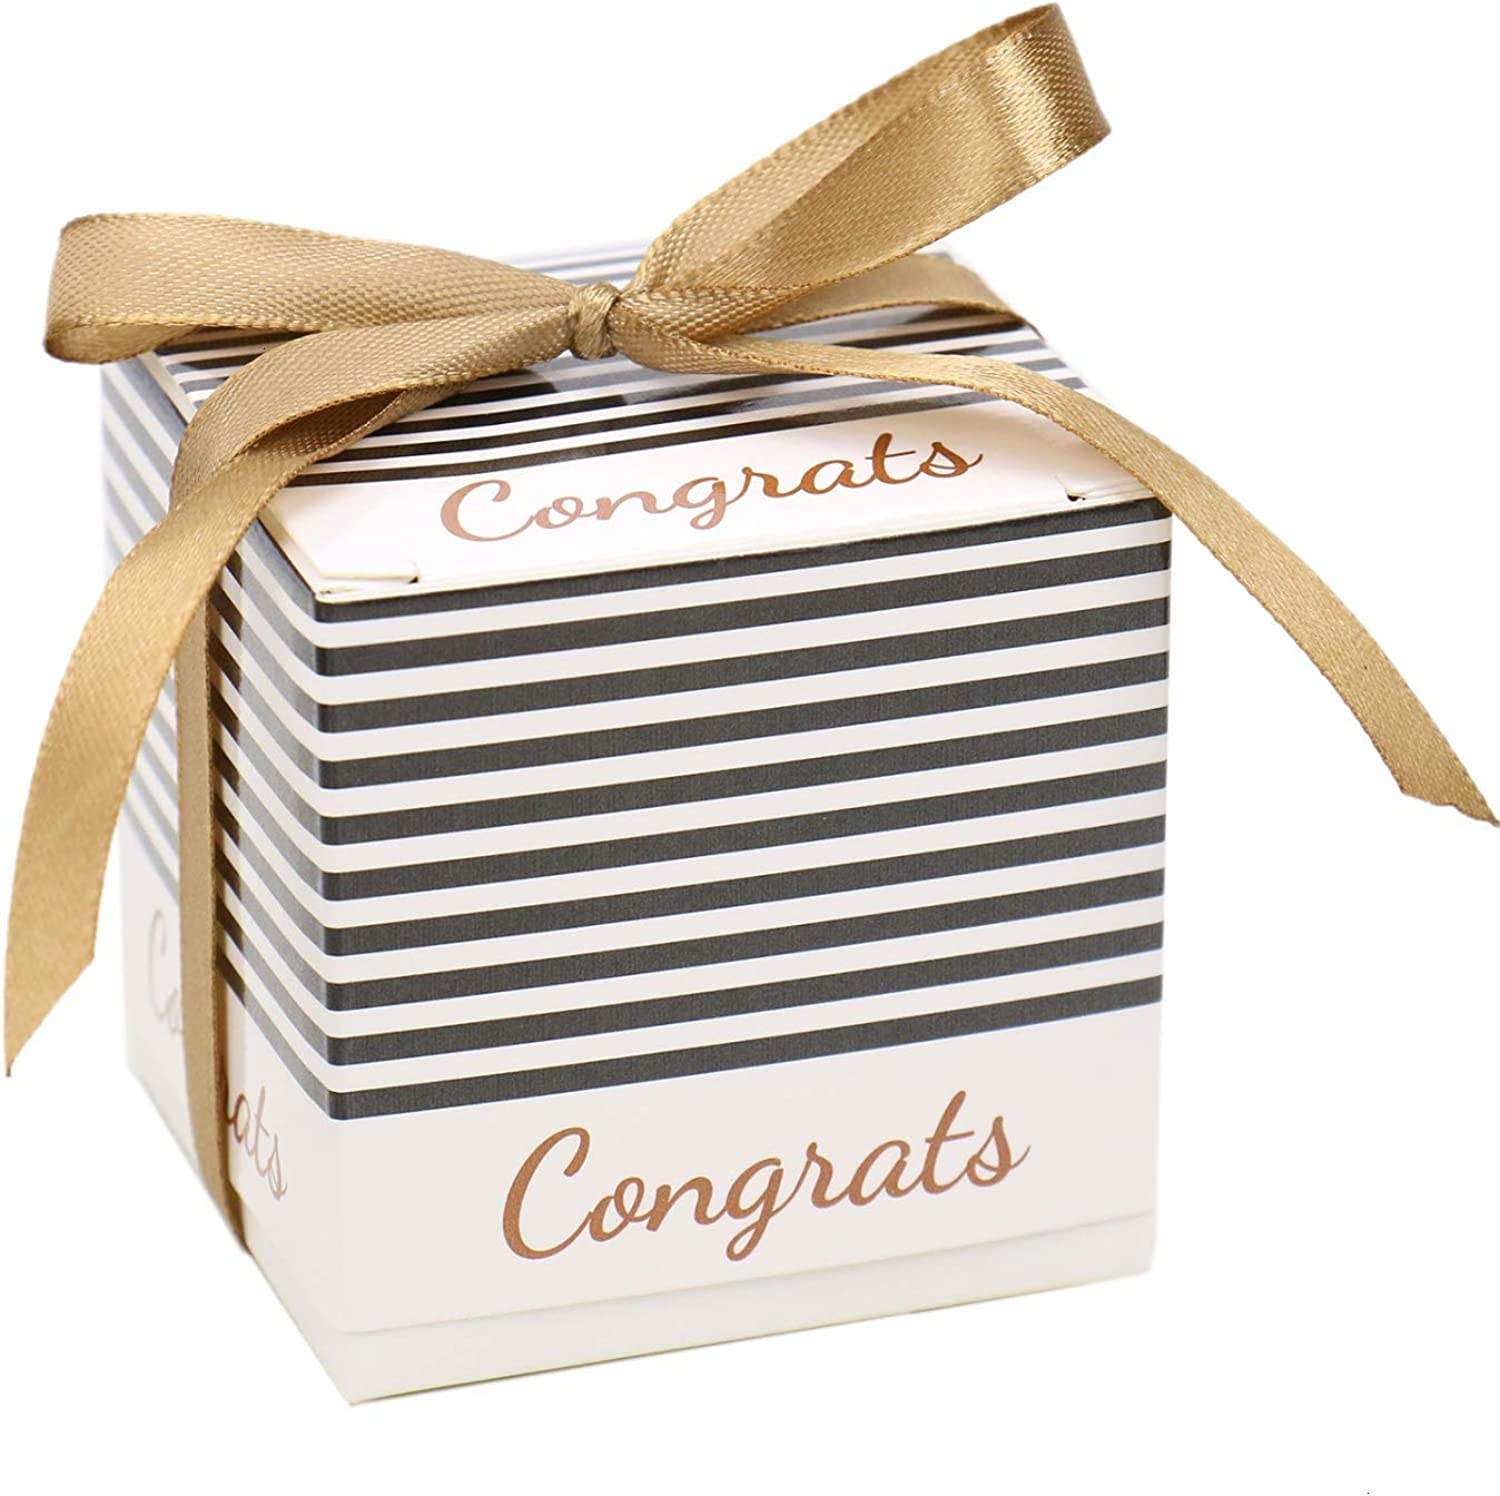 JETEHO Pack of 20 Candy Boxes Gift Boxes Sweet Boxes with Ribbons for Graduation Ceremony Party Favors, 2.4 X2.4 X2.2